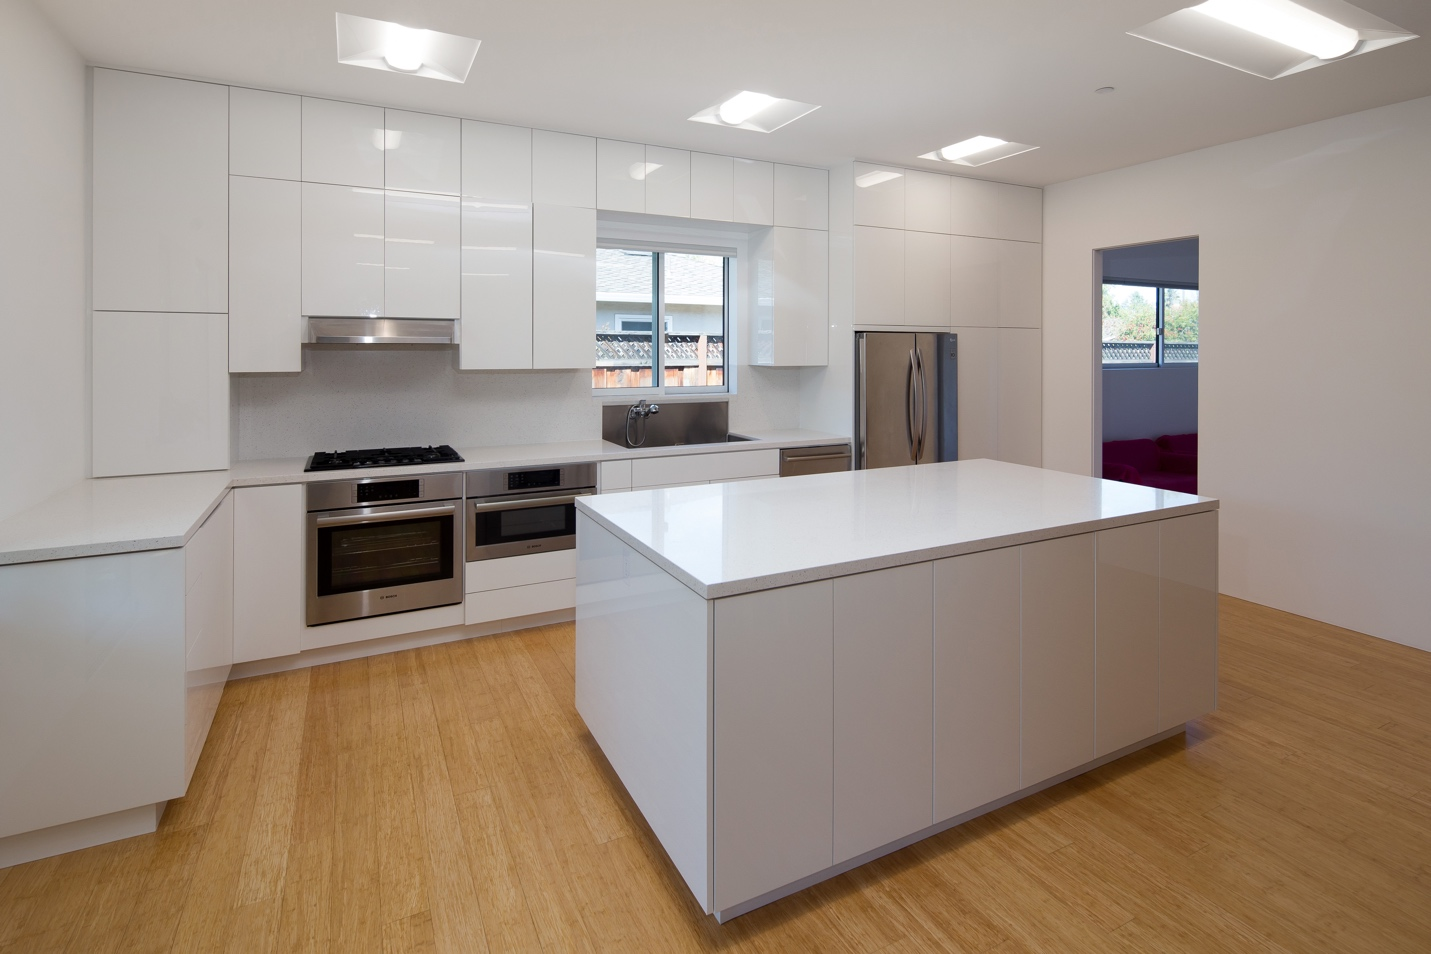 Medium kitchen, Modern Architect design, interior design work, Los Altos